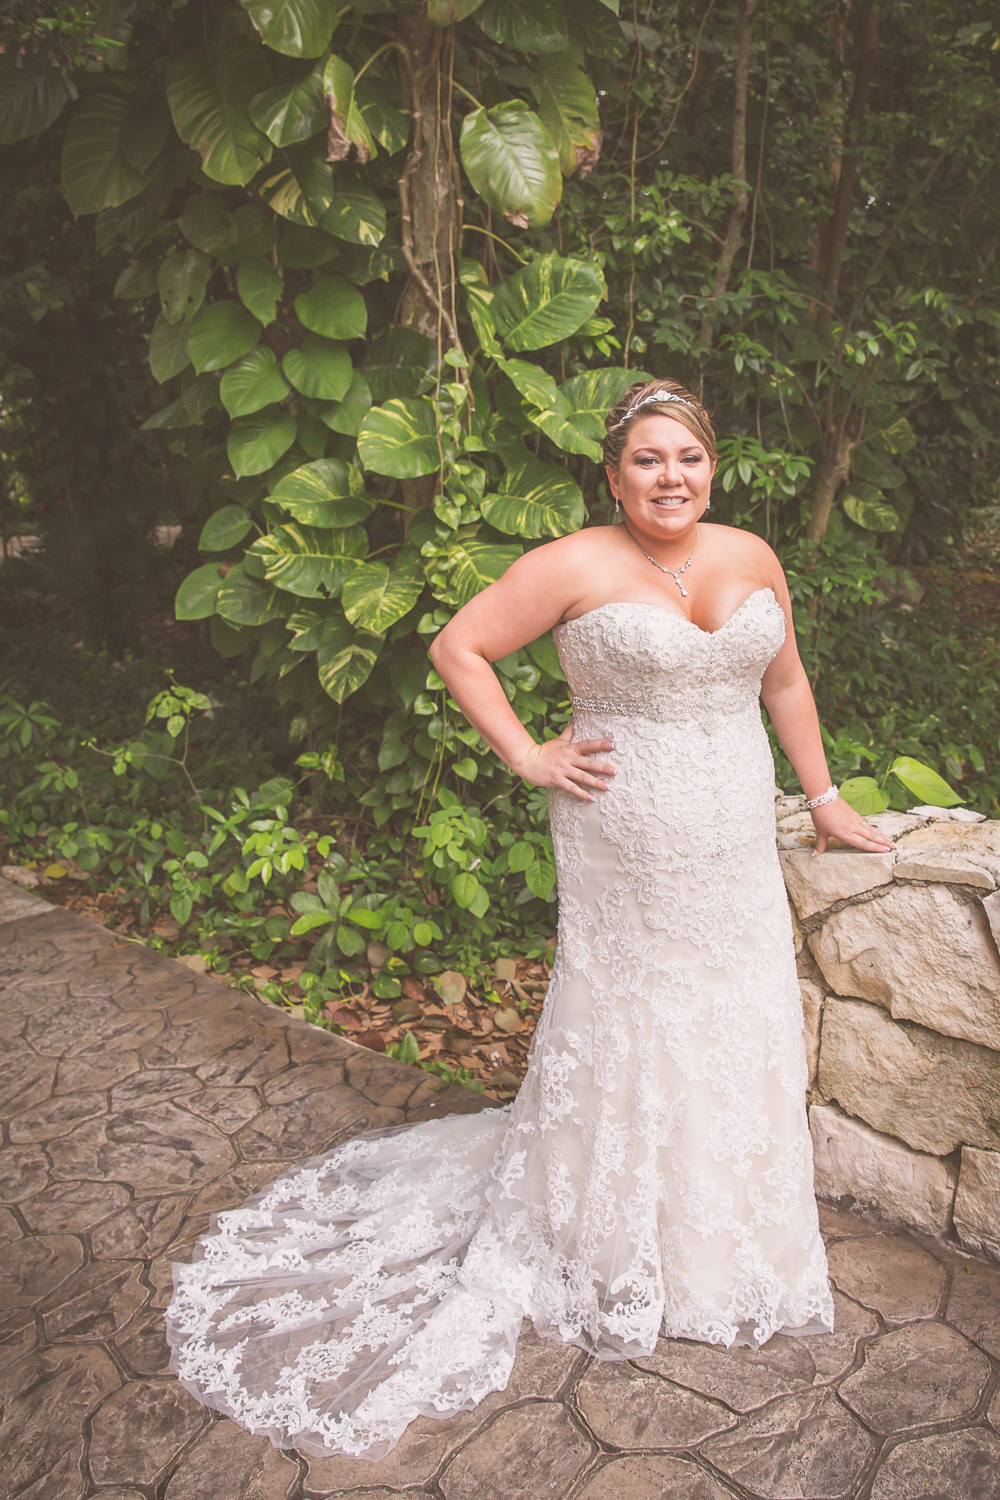 Bridals at OCCIDENTAL GRAND XCARET RESORTOccidental Grand Xcaret Resort